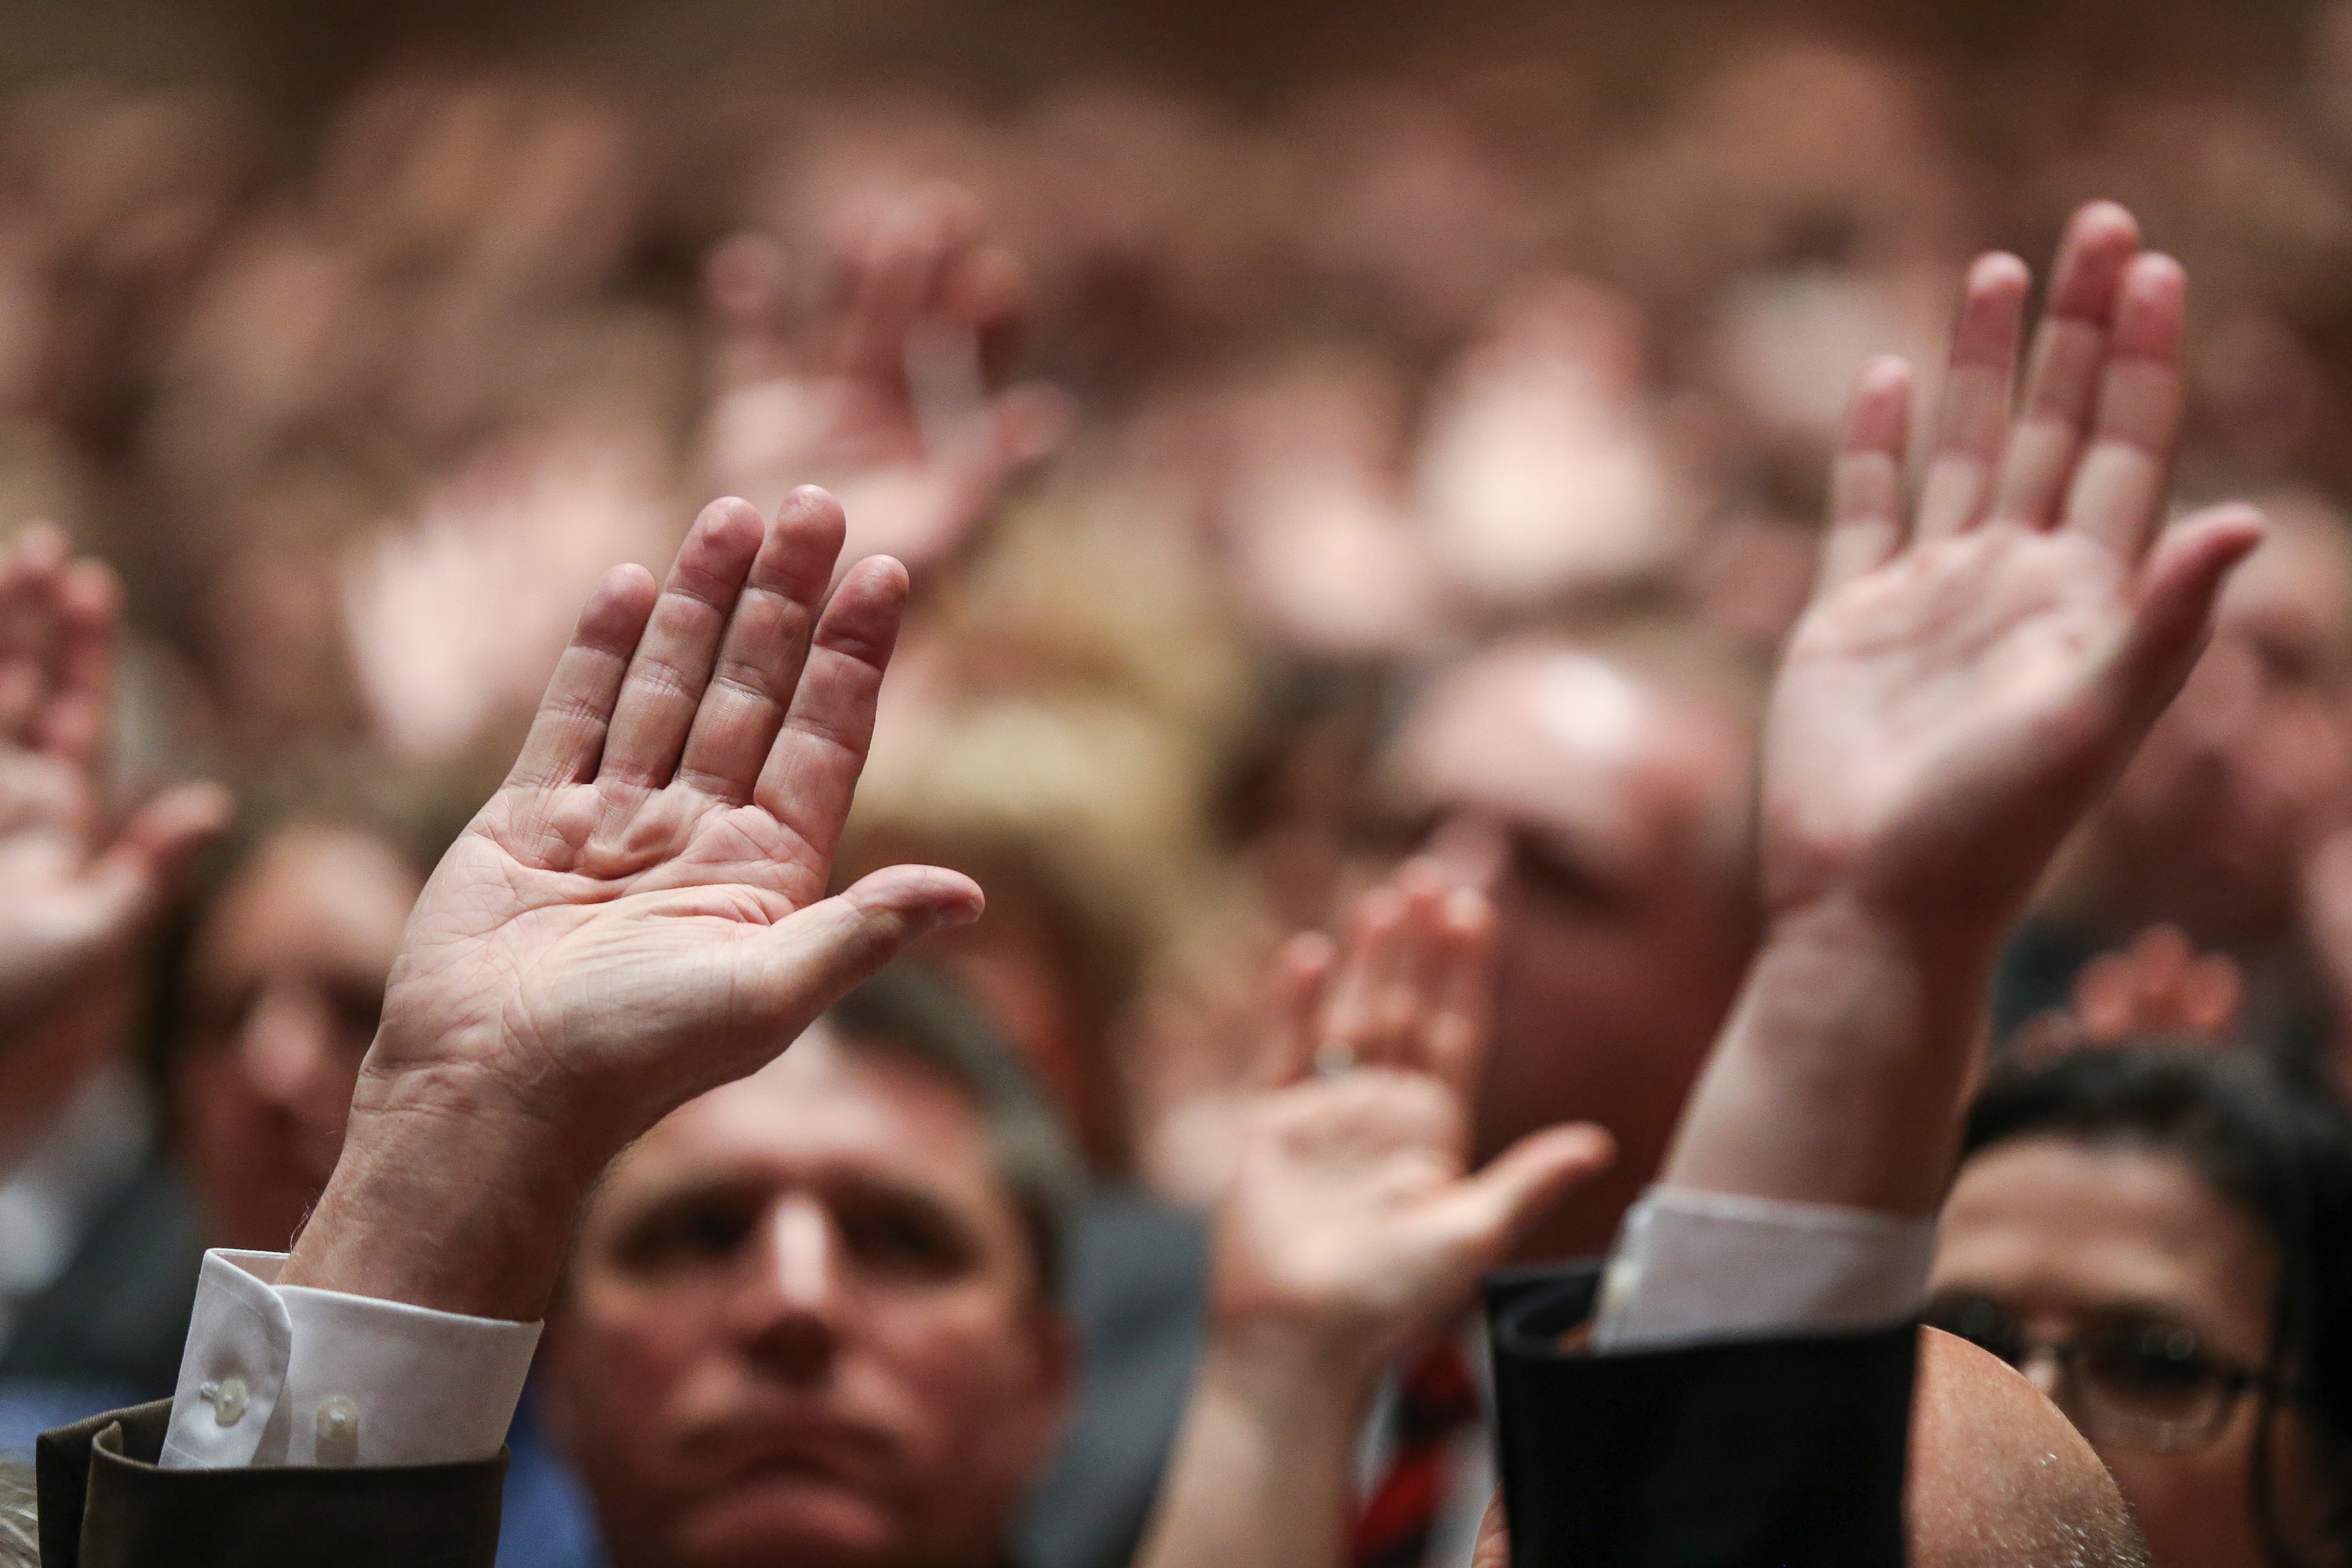 Conferencegoers raise their hands to sustain Church leadership during the Saturday afternoon session of the 188th Annual General Conference at the Conference Center in Salt Lake City on March 31, 2018.